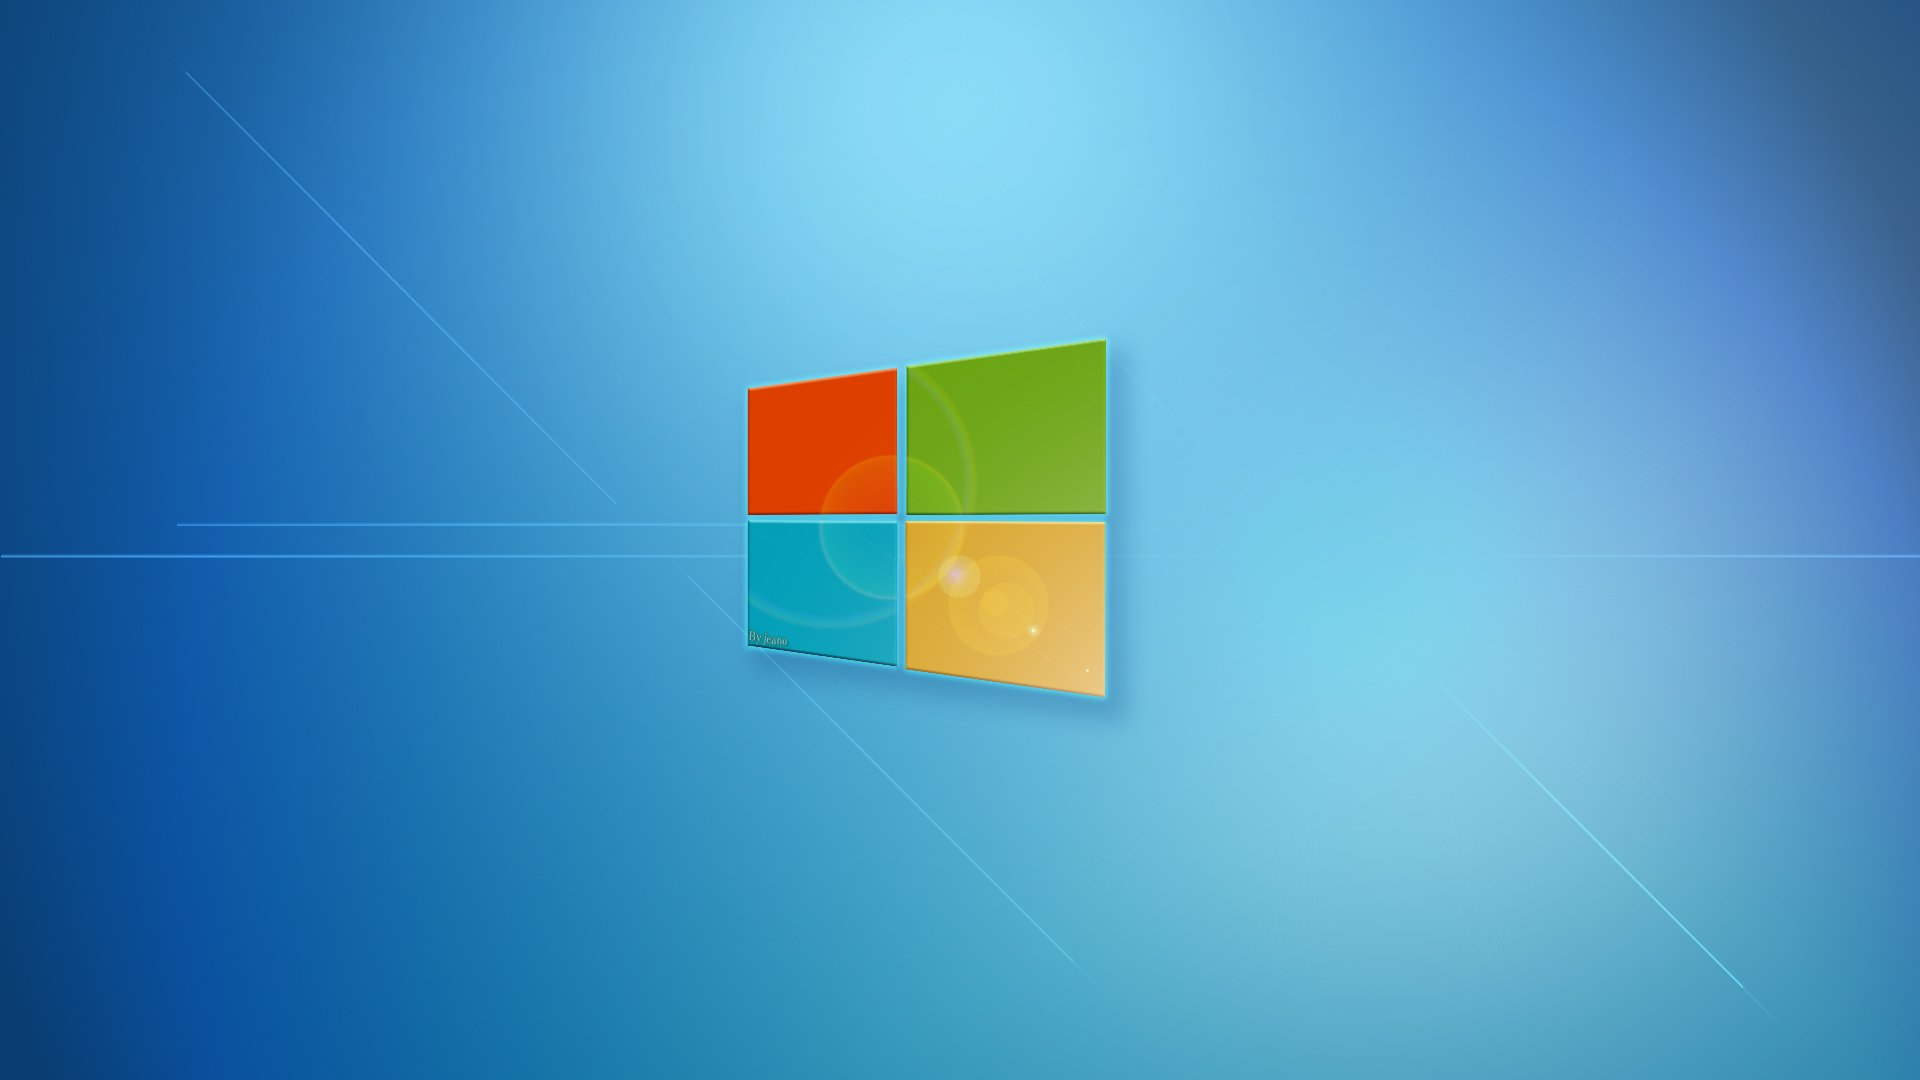 Windows 8 Backgrounds Download these 44 hd windows 8 1920x1080